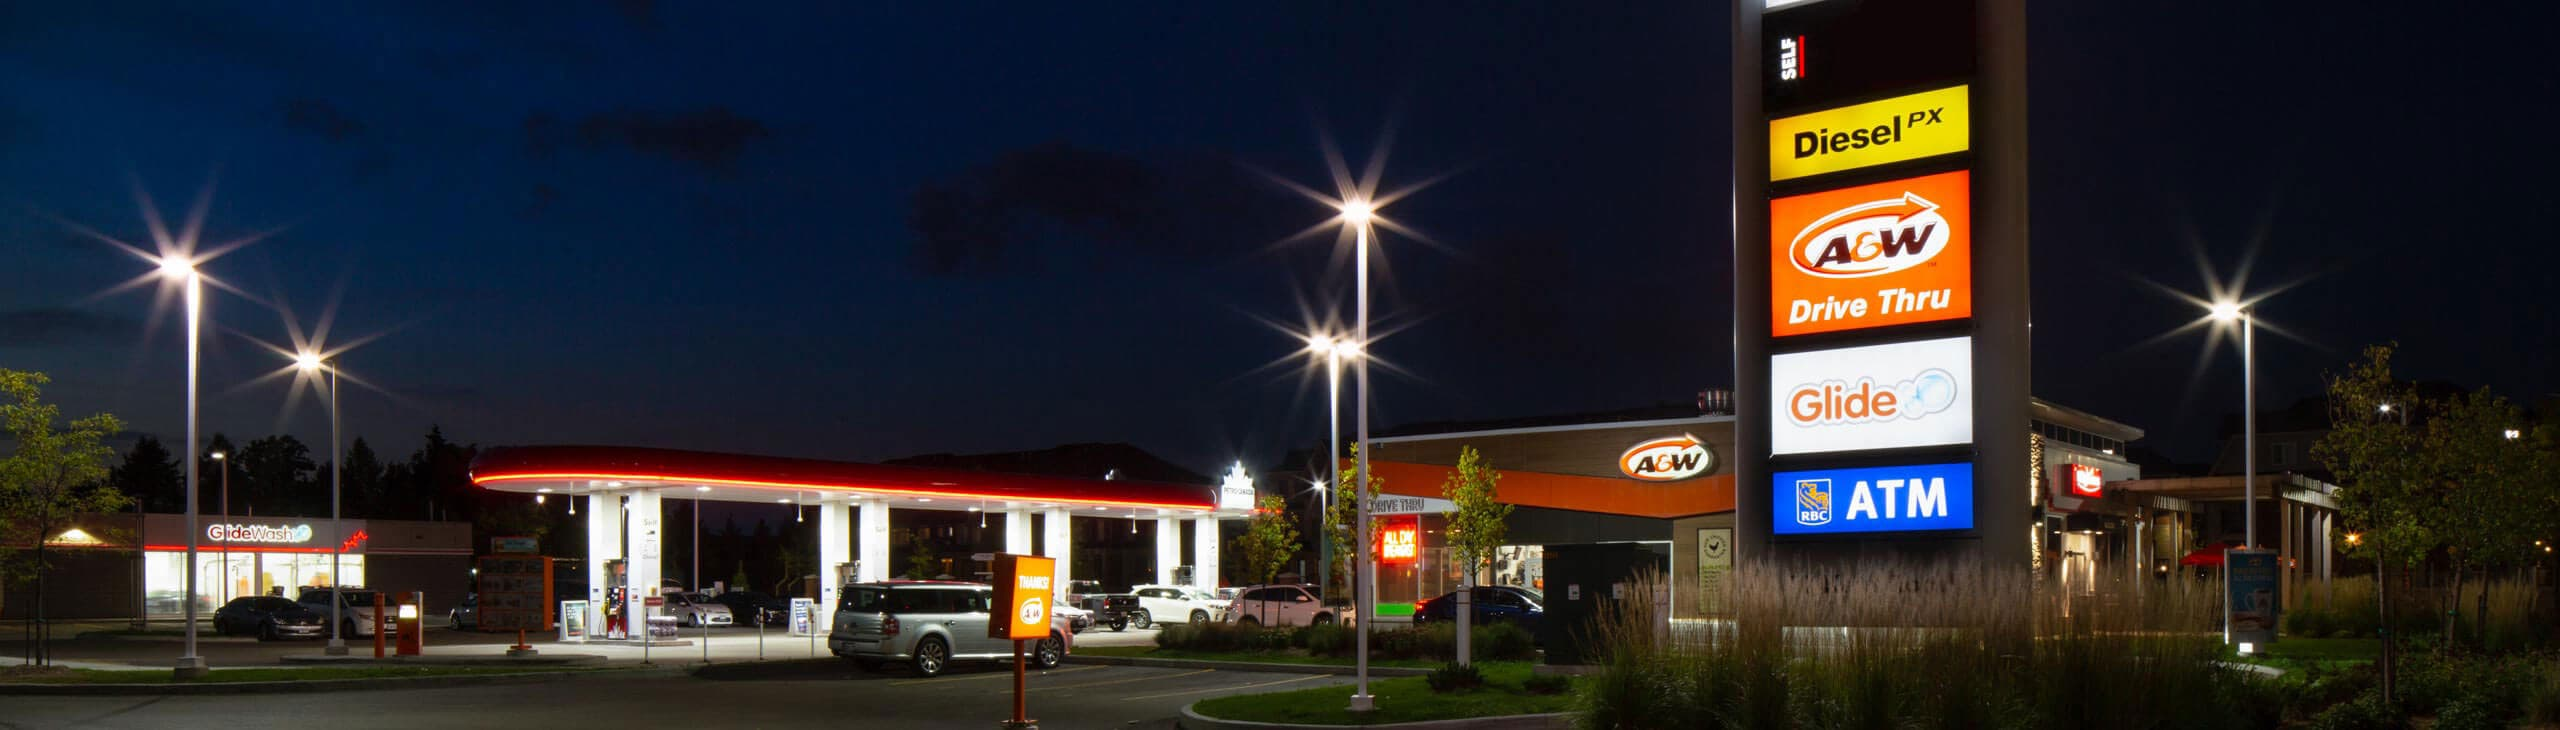 A Petro-Canada gas station at night.